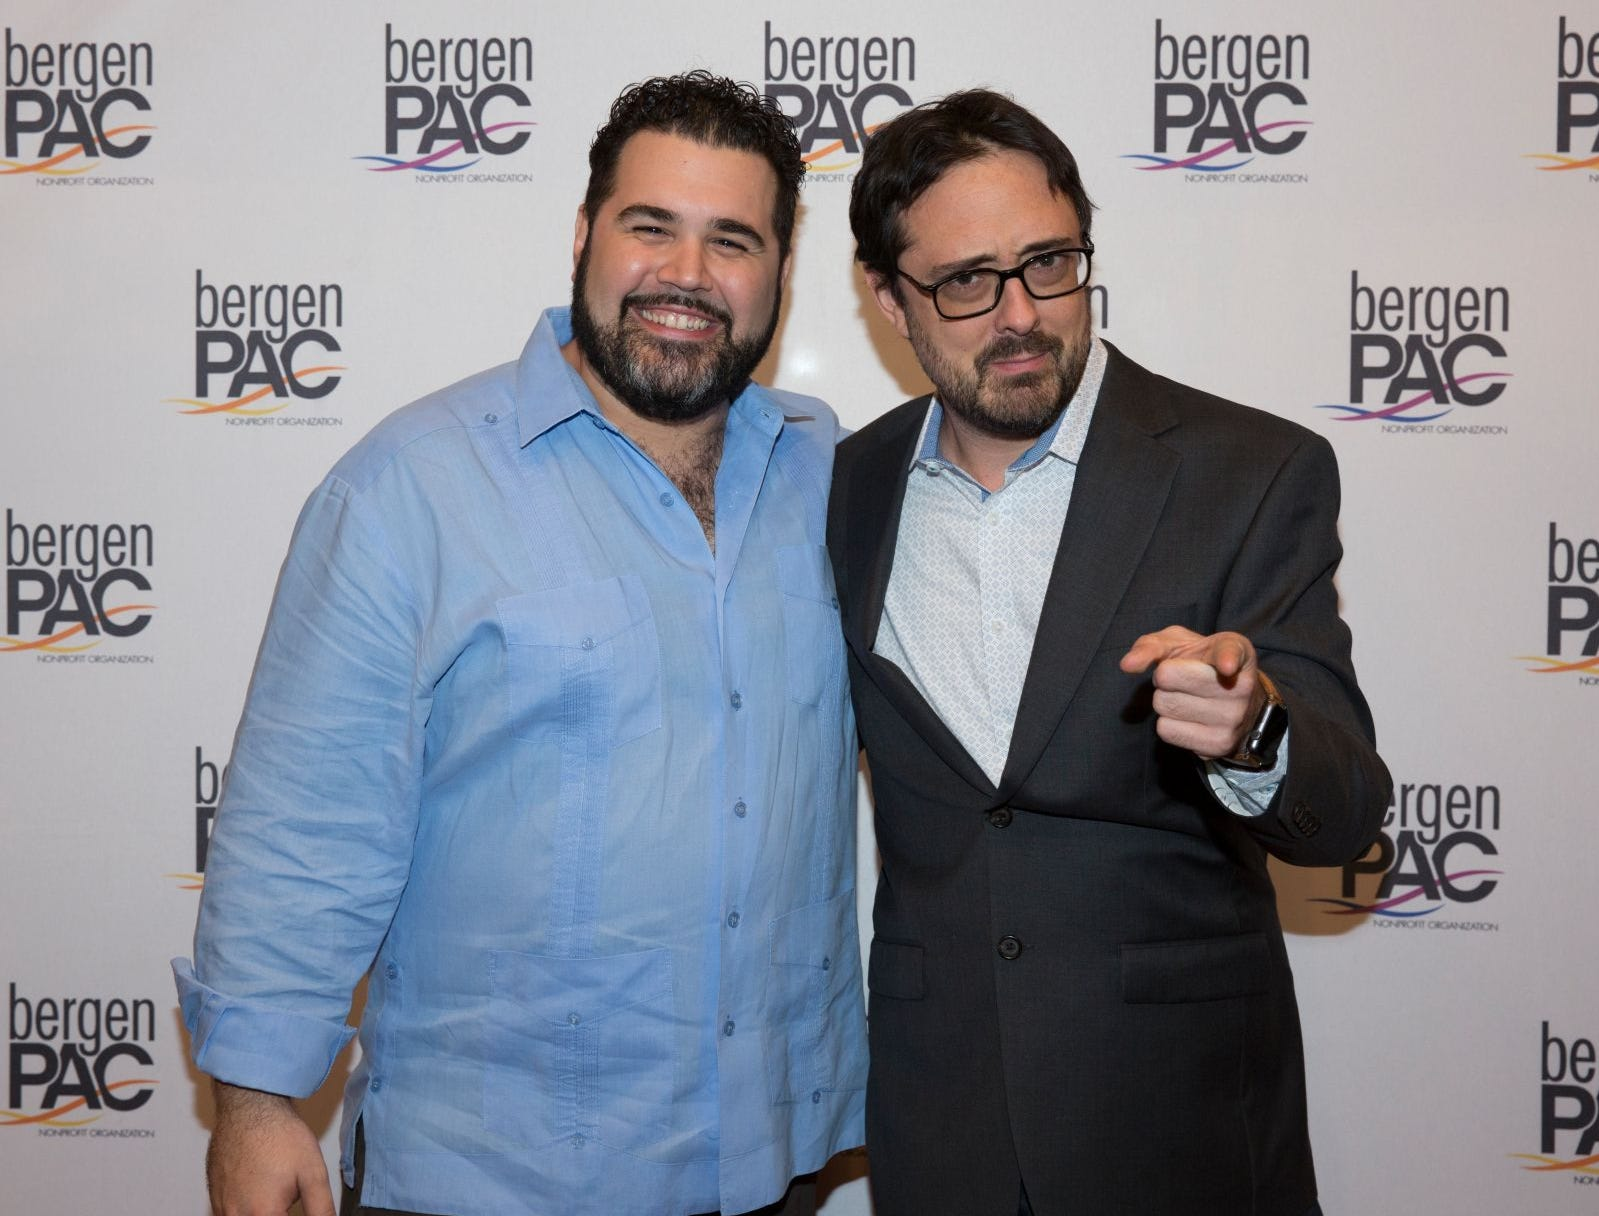 Alex Diaz, Cory Ness. BergenPAC held its annual fall gala featuring John Fogerty in Englewood. This year's honoree was Fernando Garip, from Wilmington Trust and M&T Bank. 11/08/2018